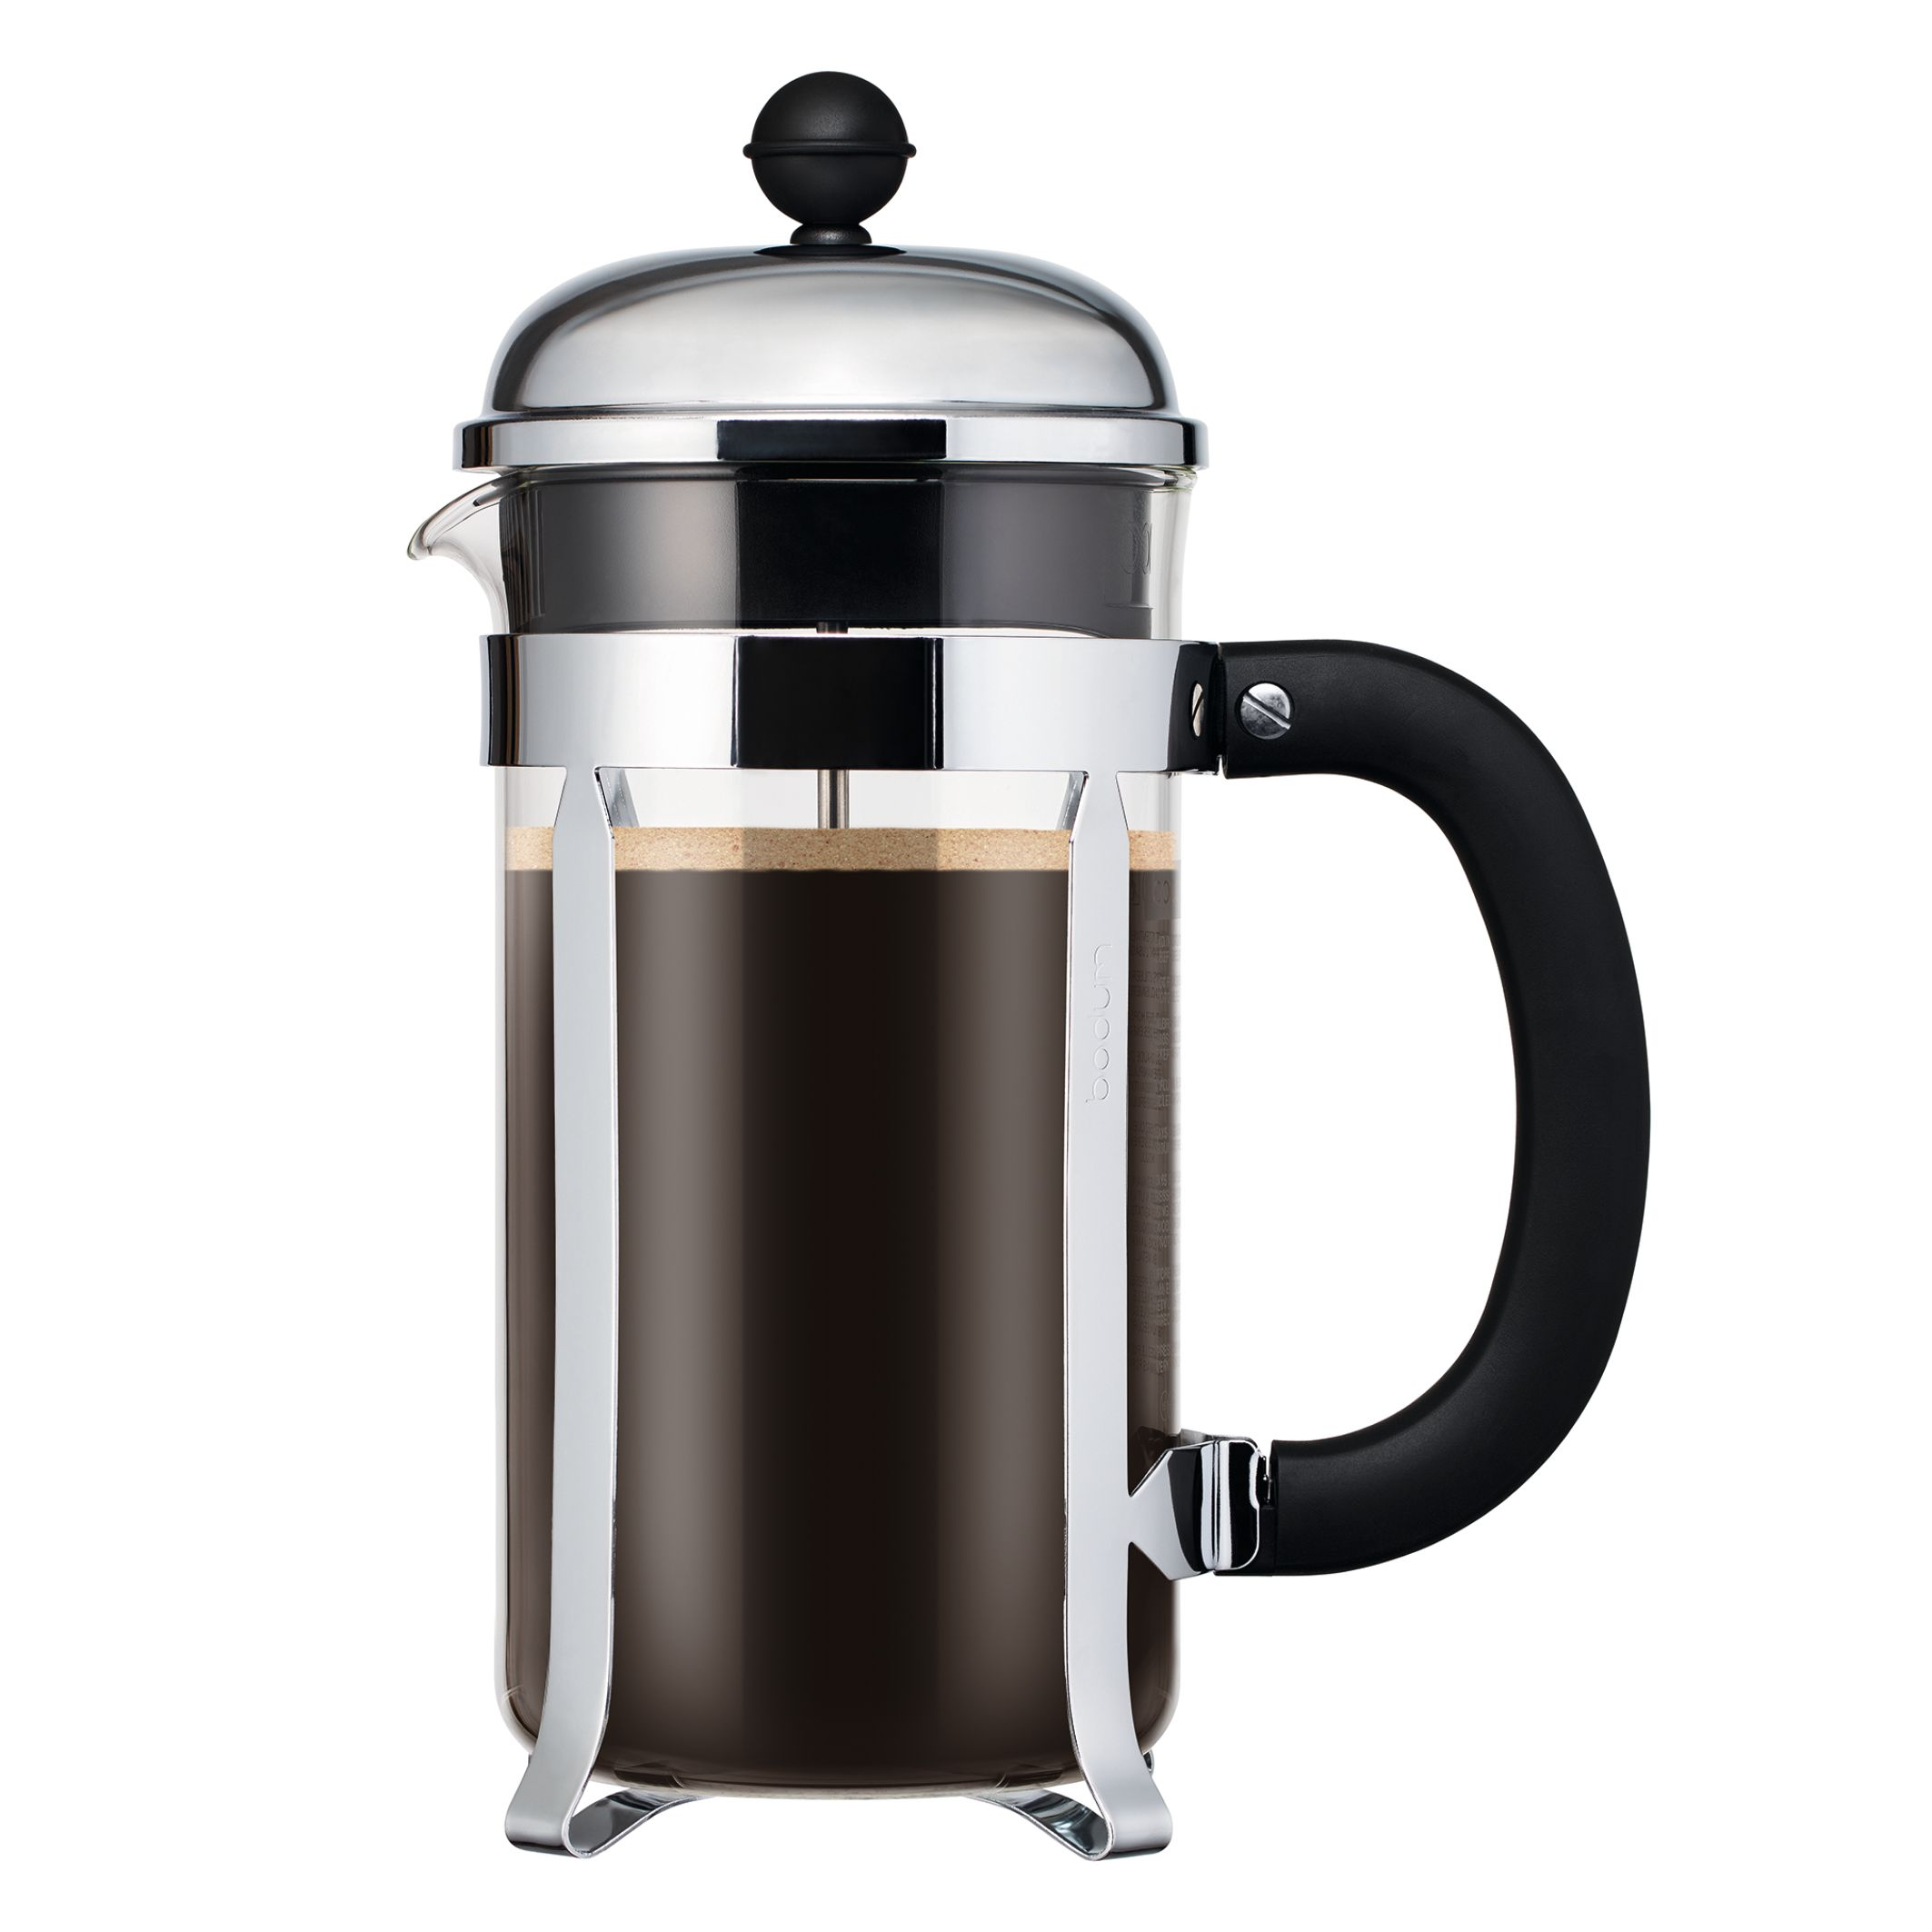 bodum chambord french press coffee maker with santoprene handle 1l 34oz 8 cup chrome. Black Bedroom Furniture Sets. Home Design Ideas